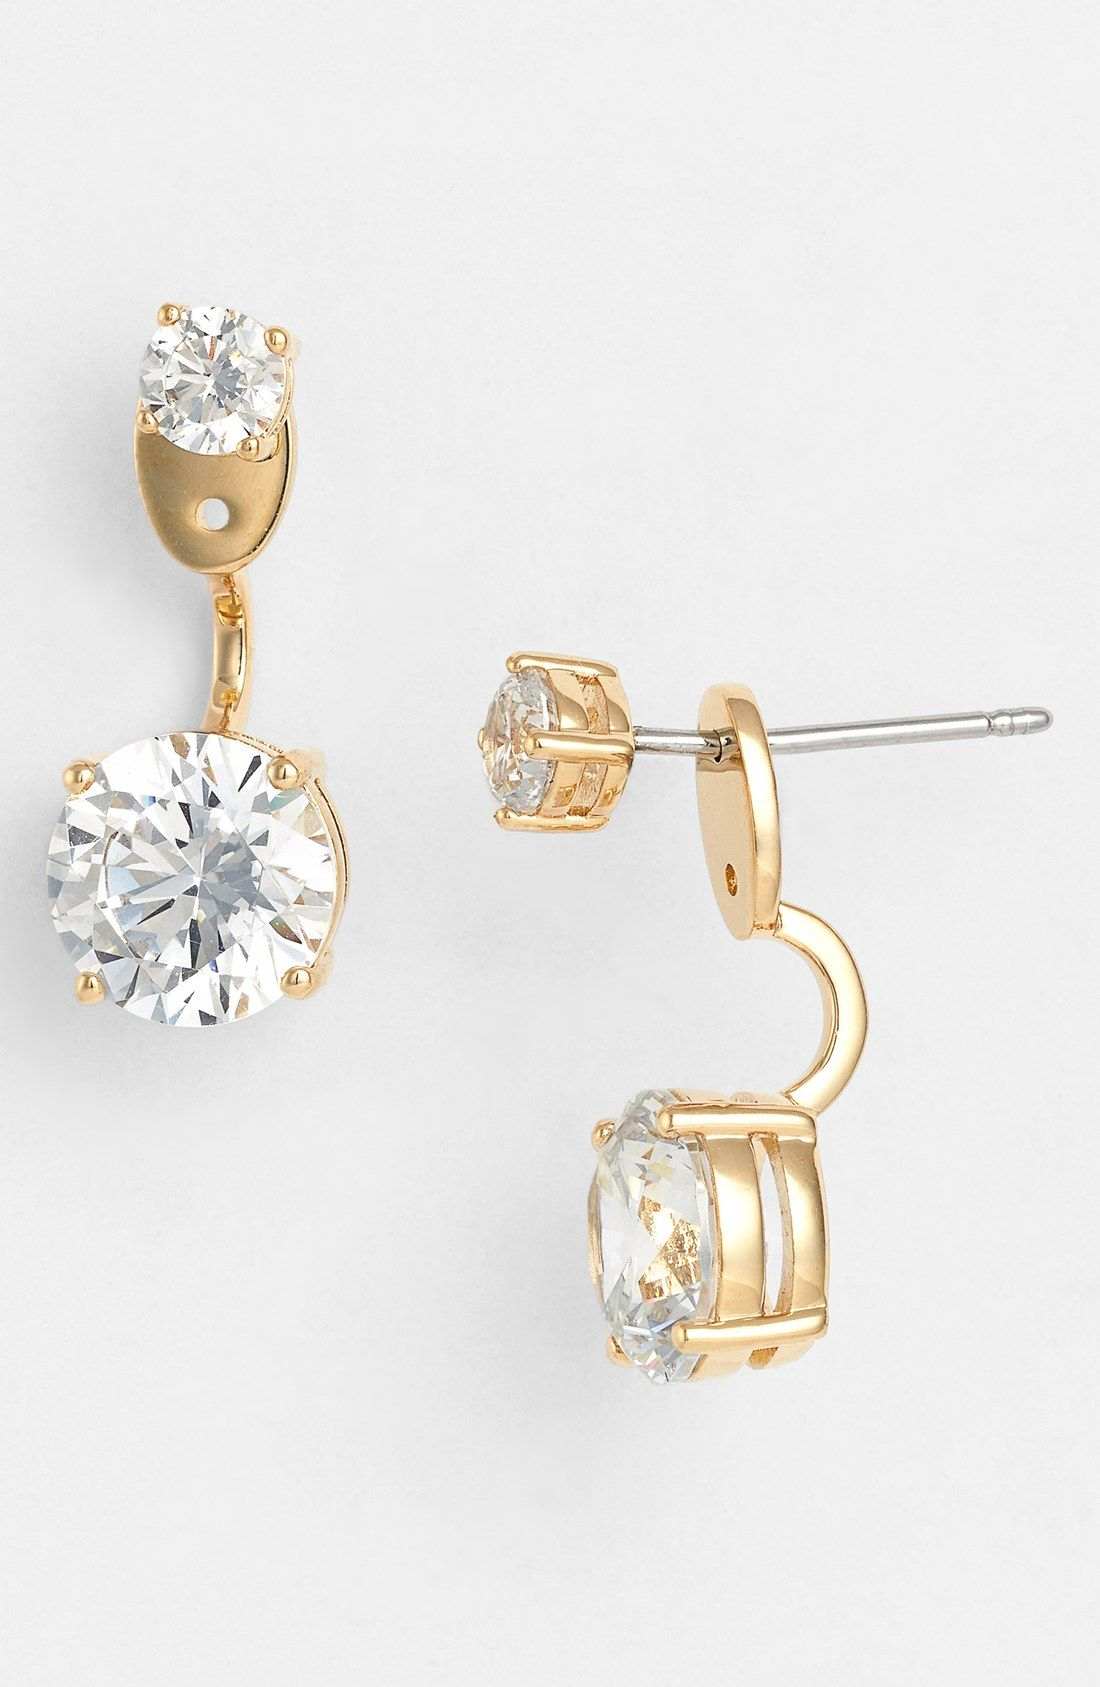 These sparkling and oh-so-unique prong-set drop down earrings add a fun  unexpected detail because they drop from the back of the earlobe rather  than the ... e09d12807799